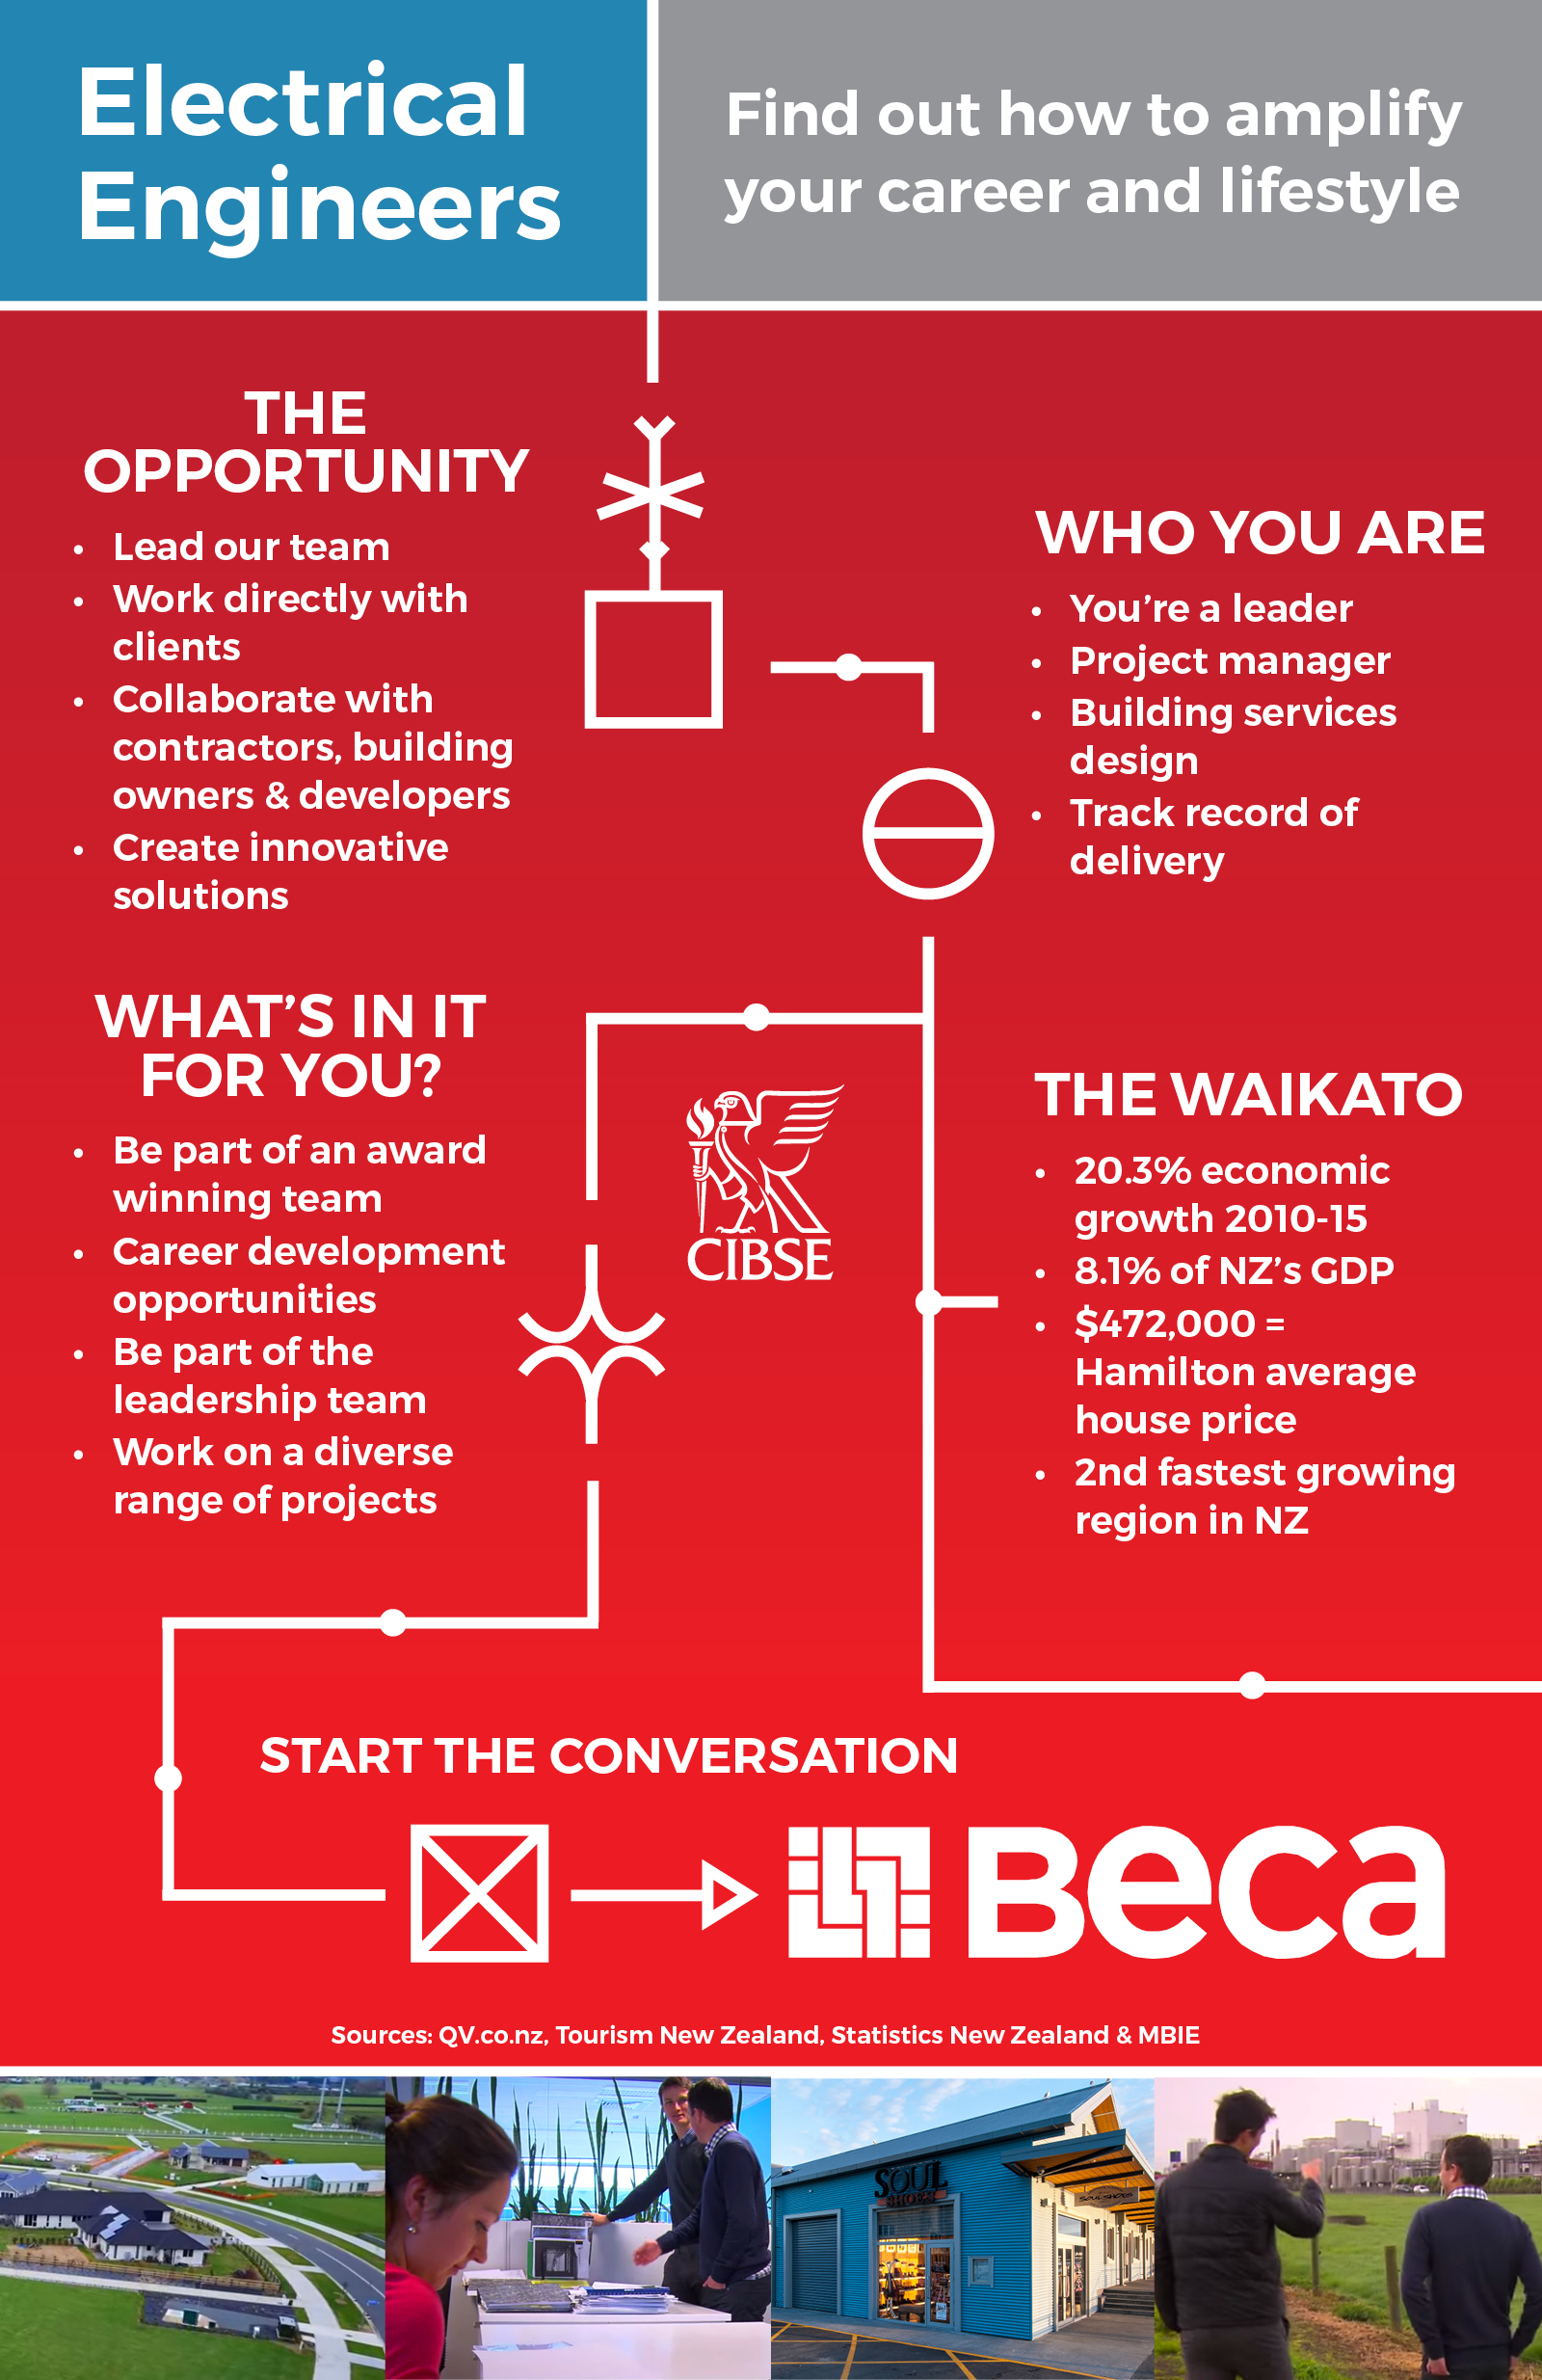 Beca Electrical infographic.jpg